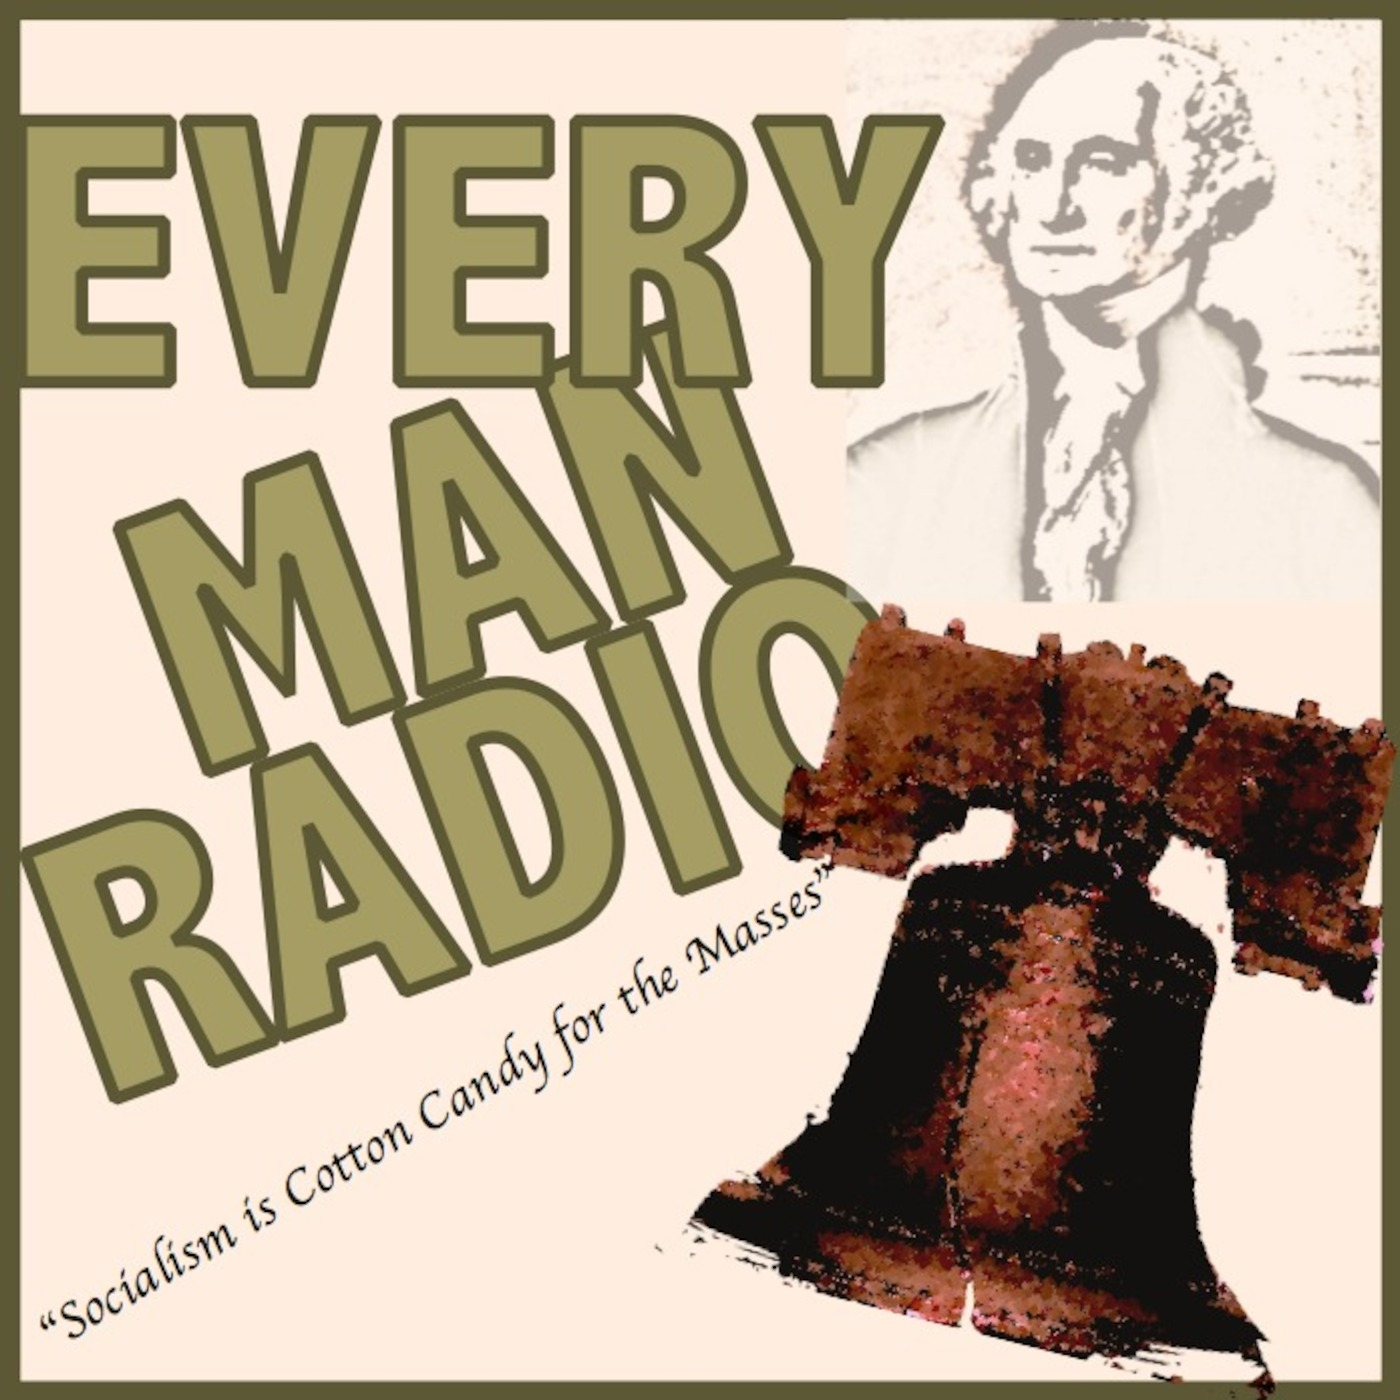 Everyman's Podcast